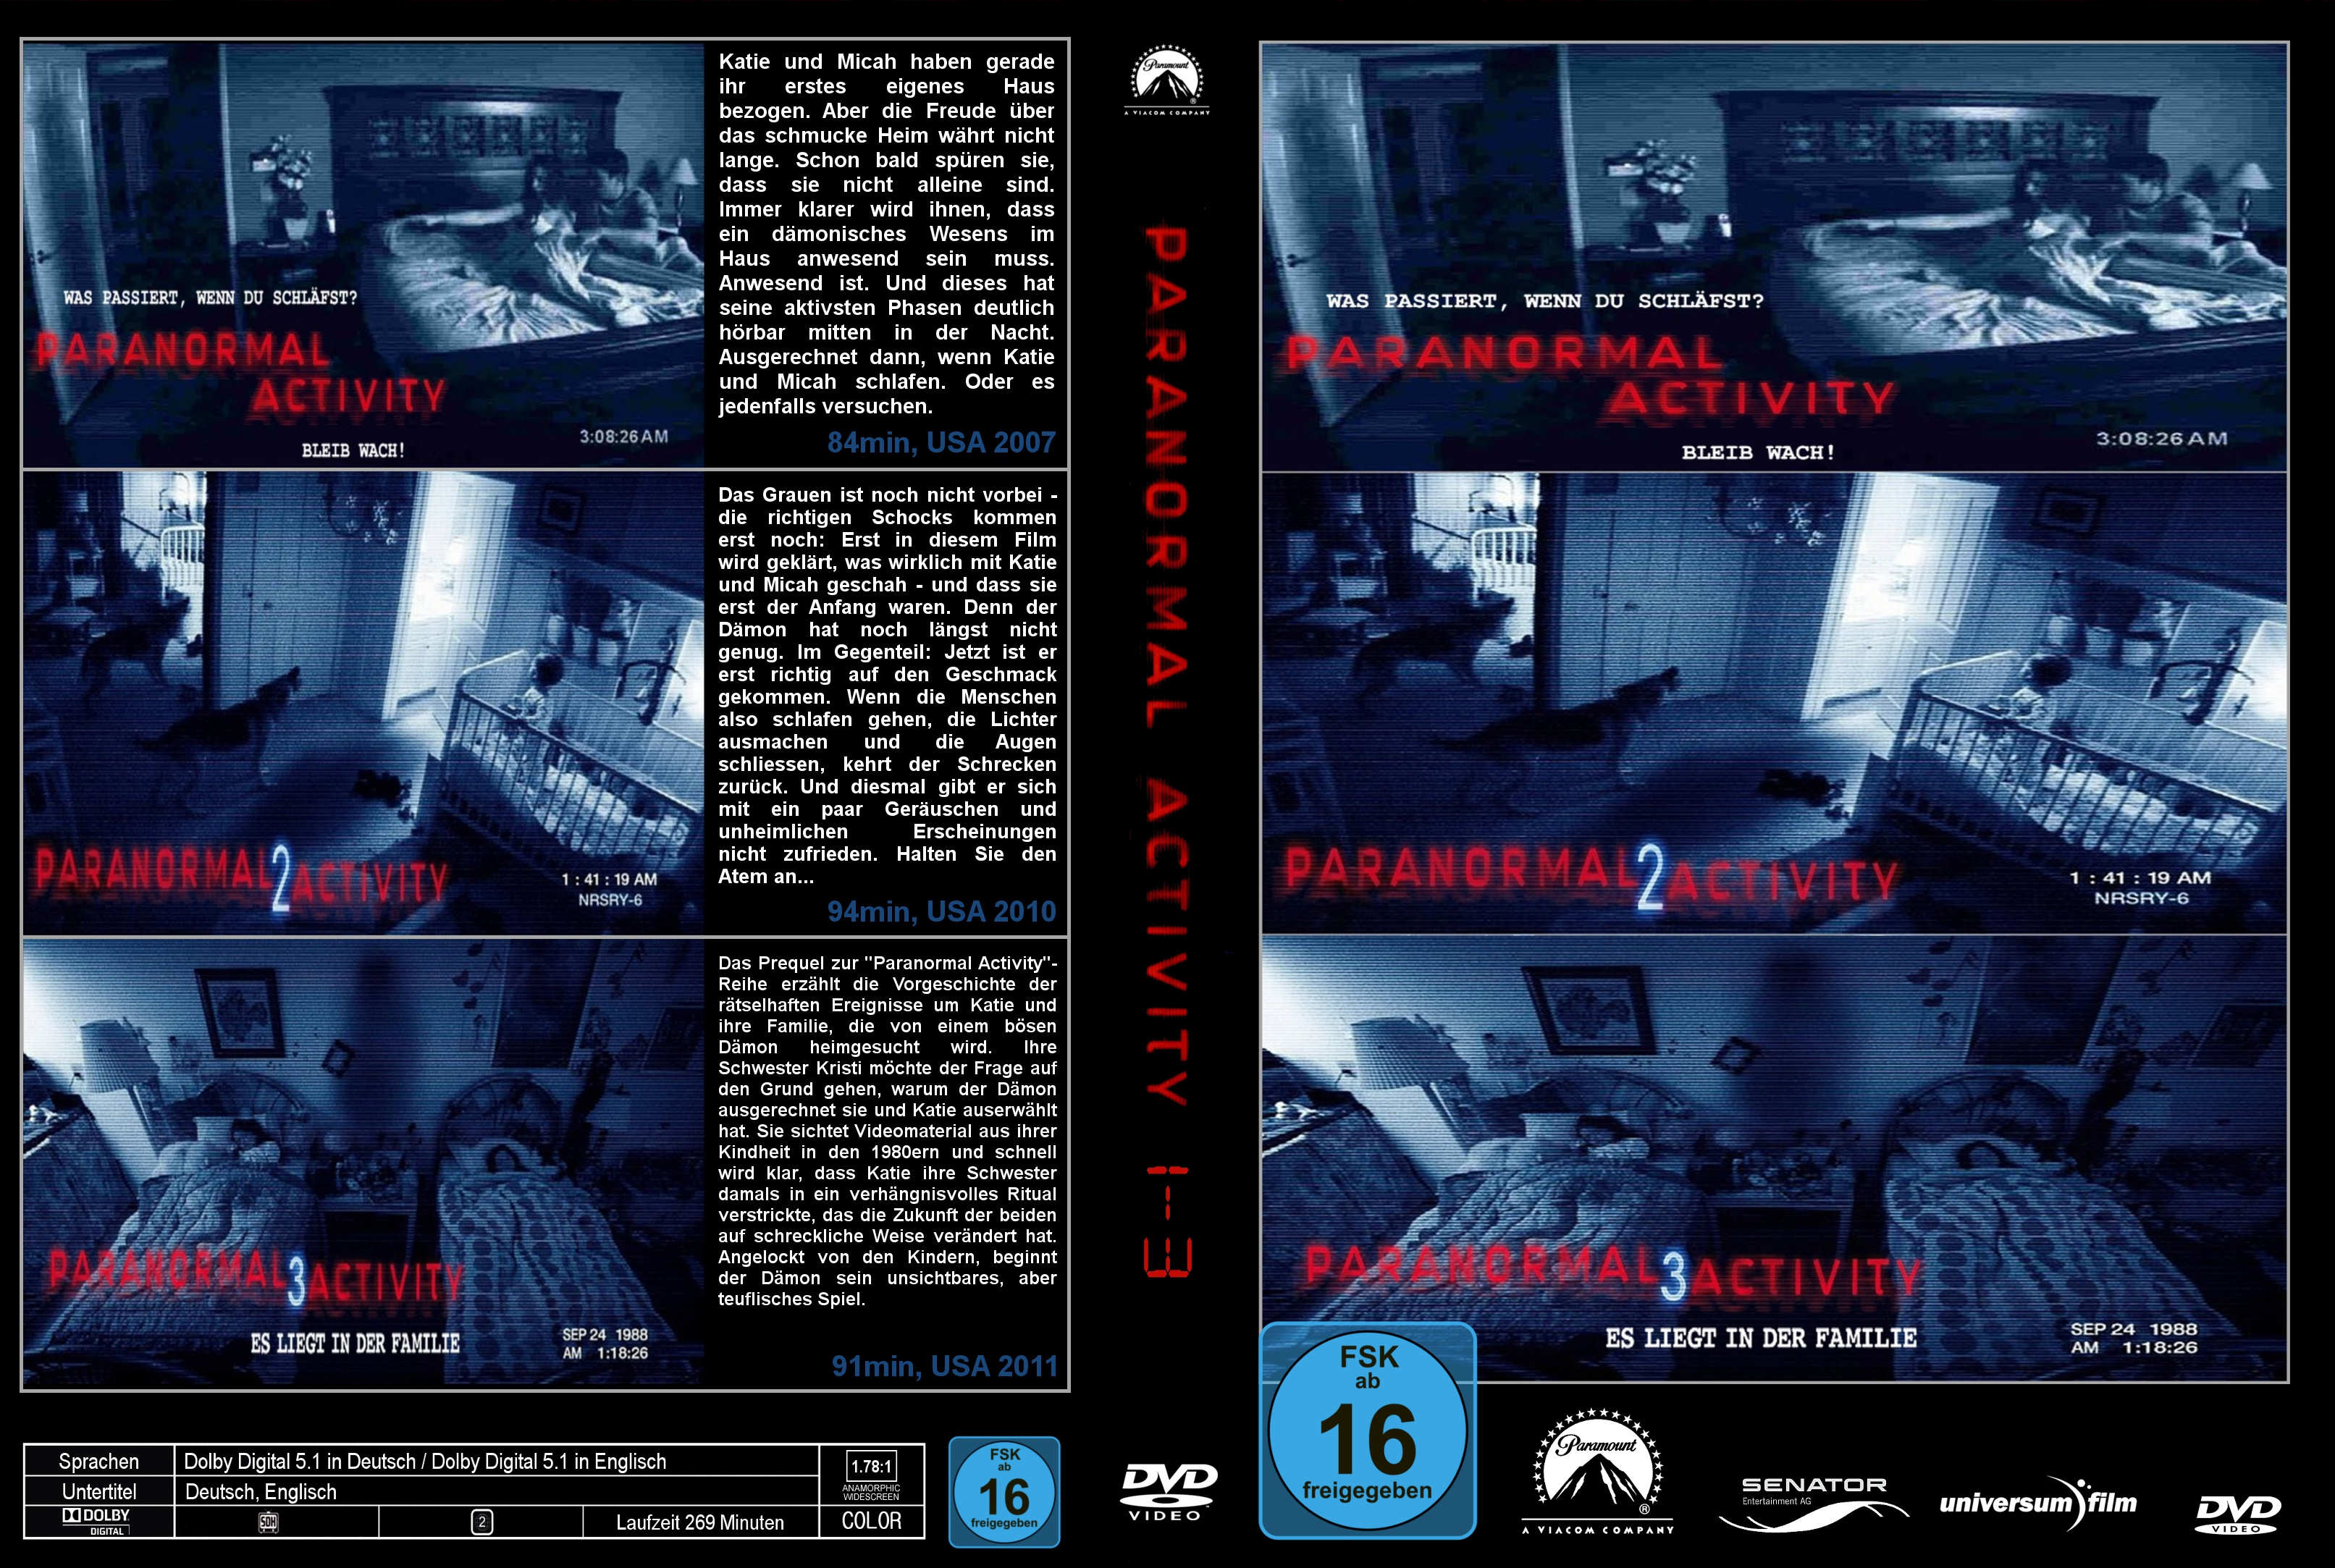 Paranormal Activity  House Location  Global Film Locations